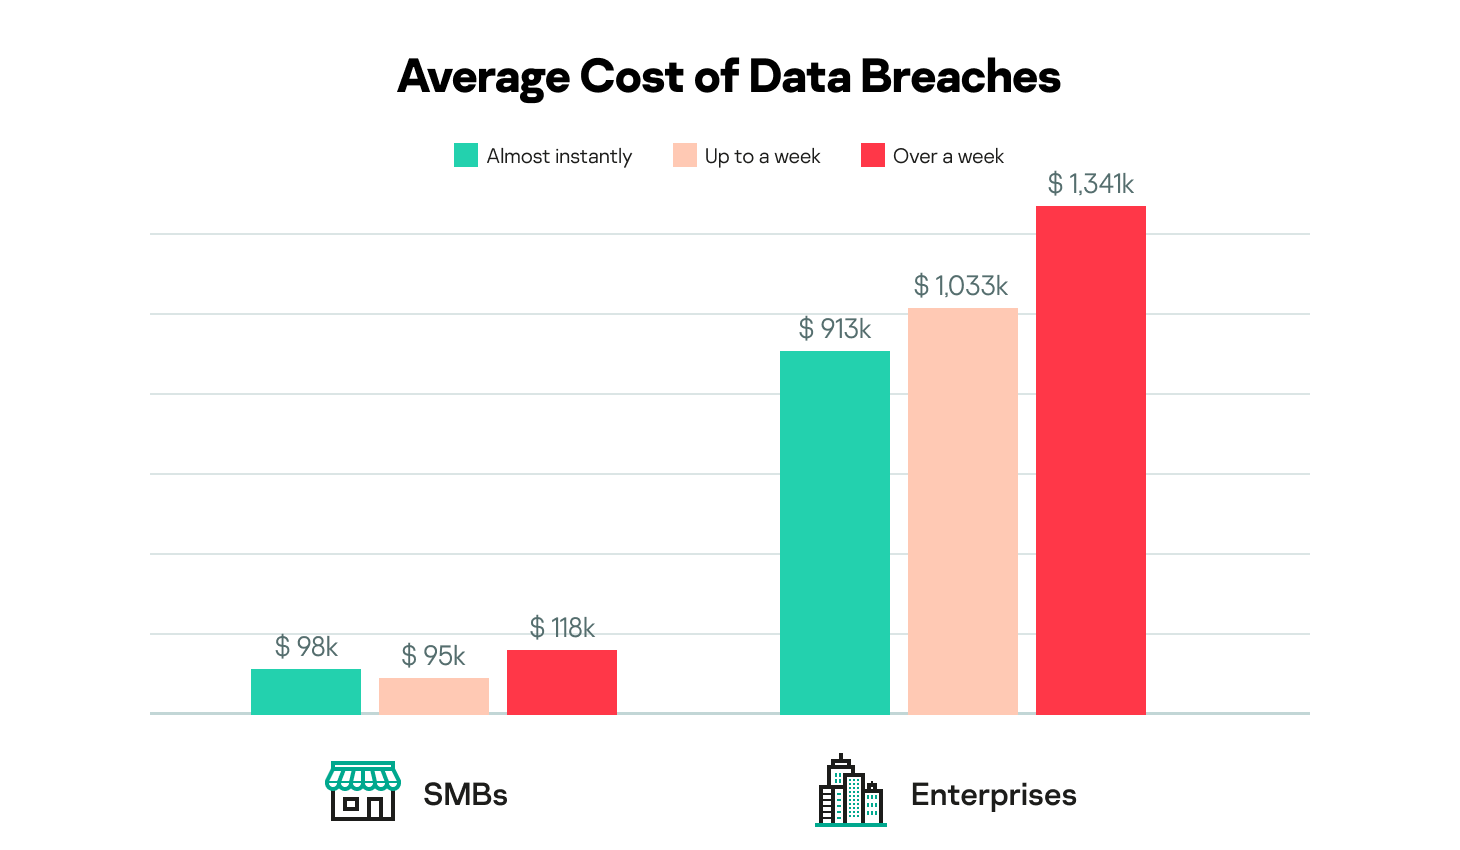 Graphic showing average cost of data breaches for SMBs and Enterprises.